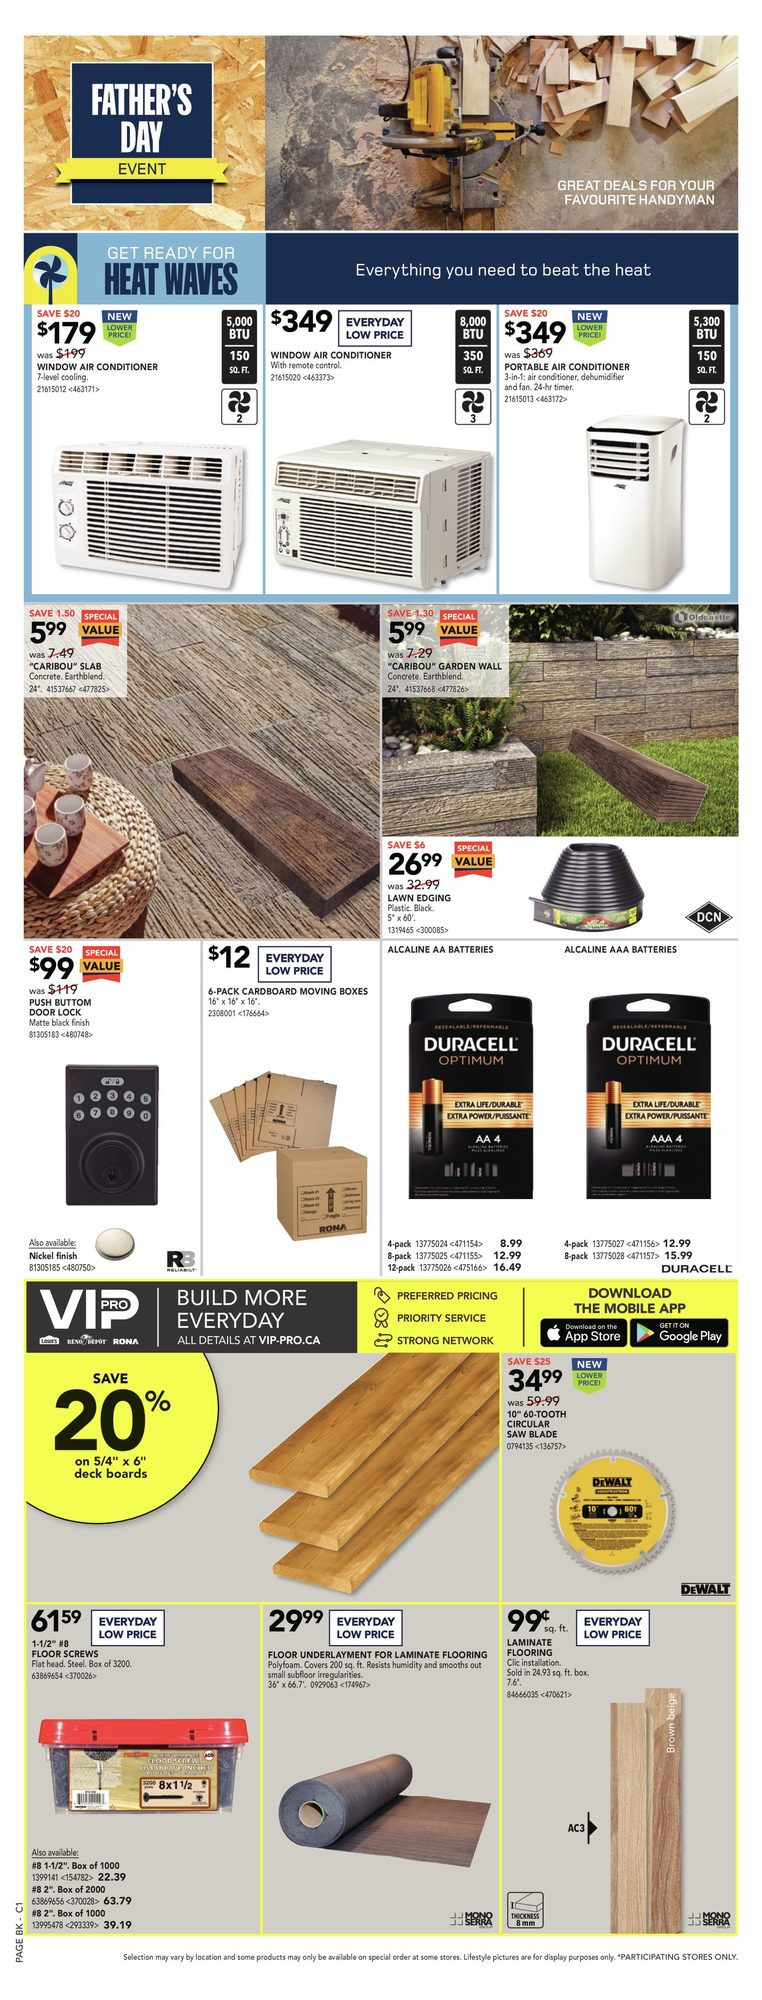 Rona - Weekly Flyer Specials - Father's Day Event - Page 10